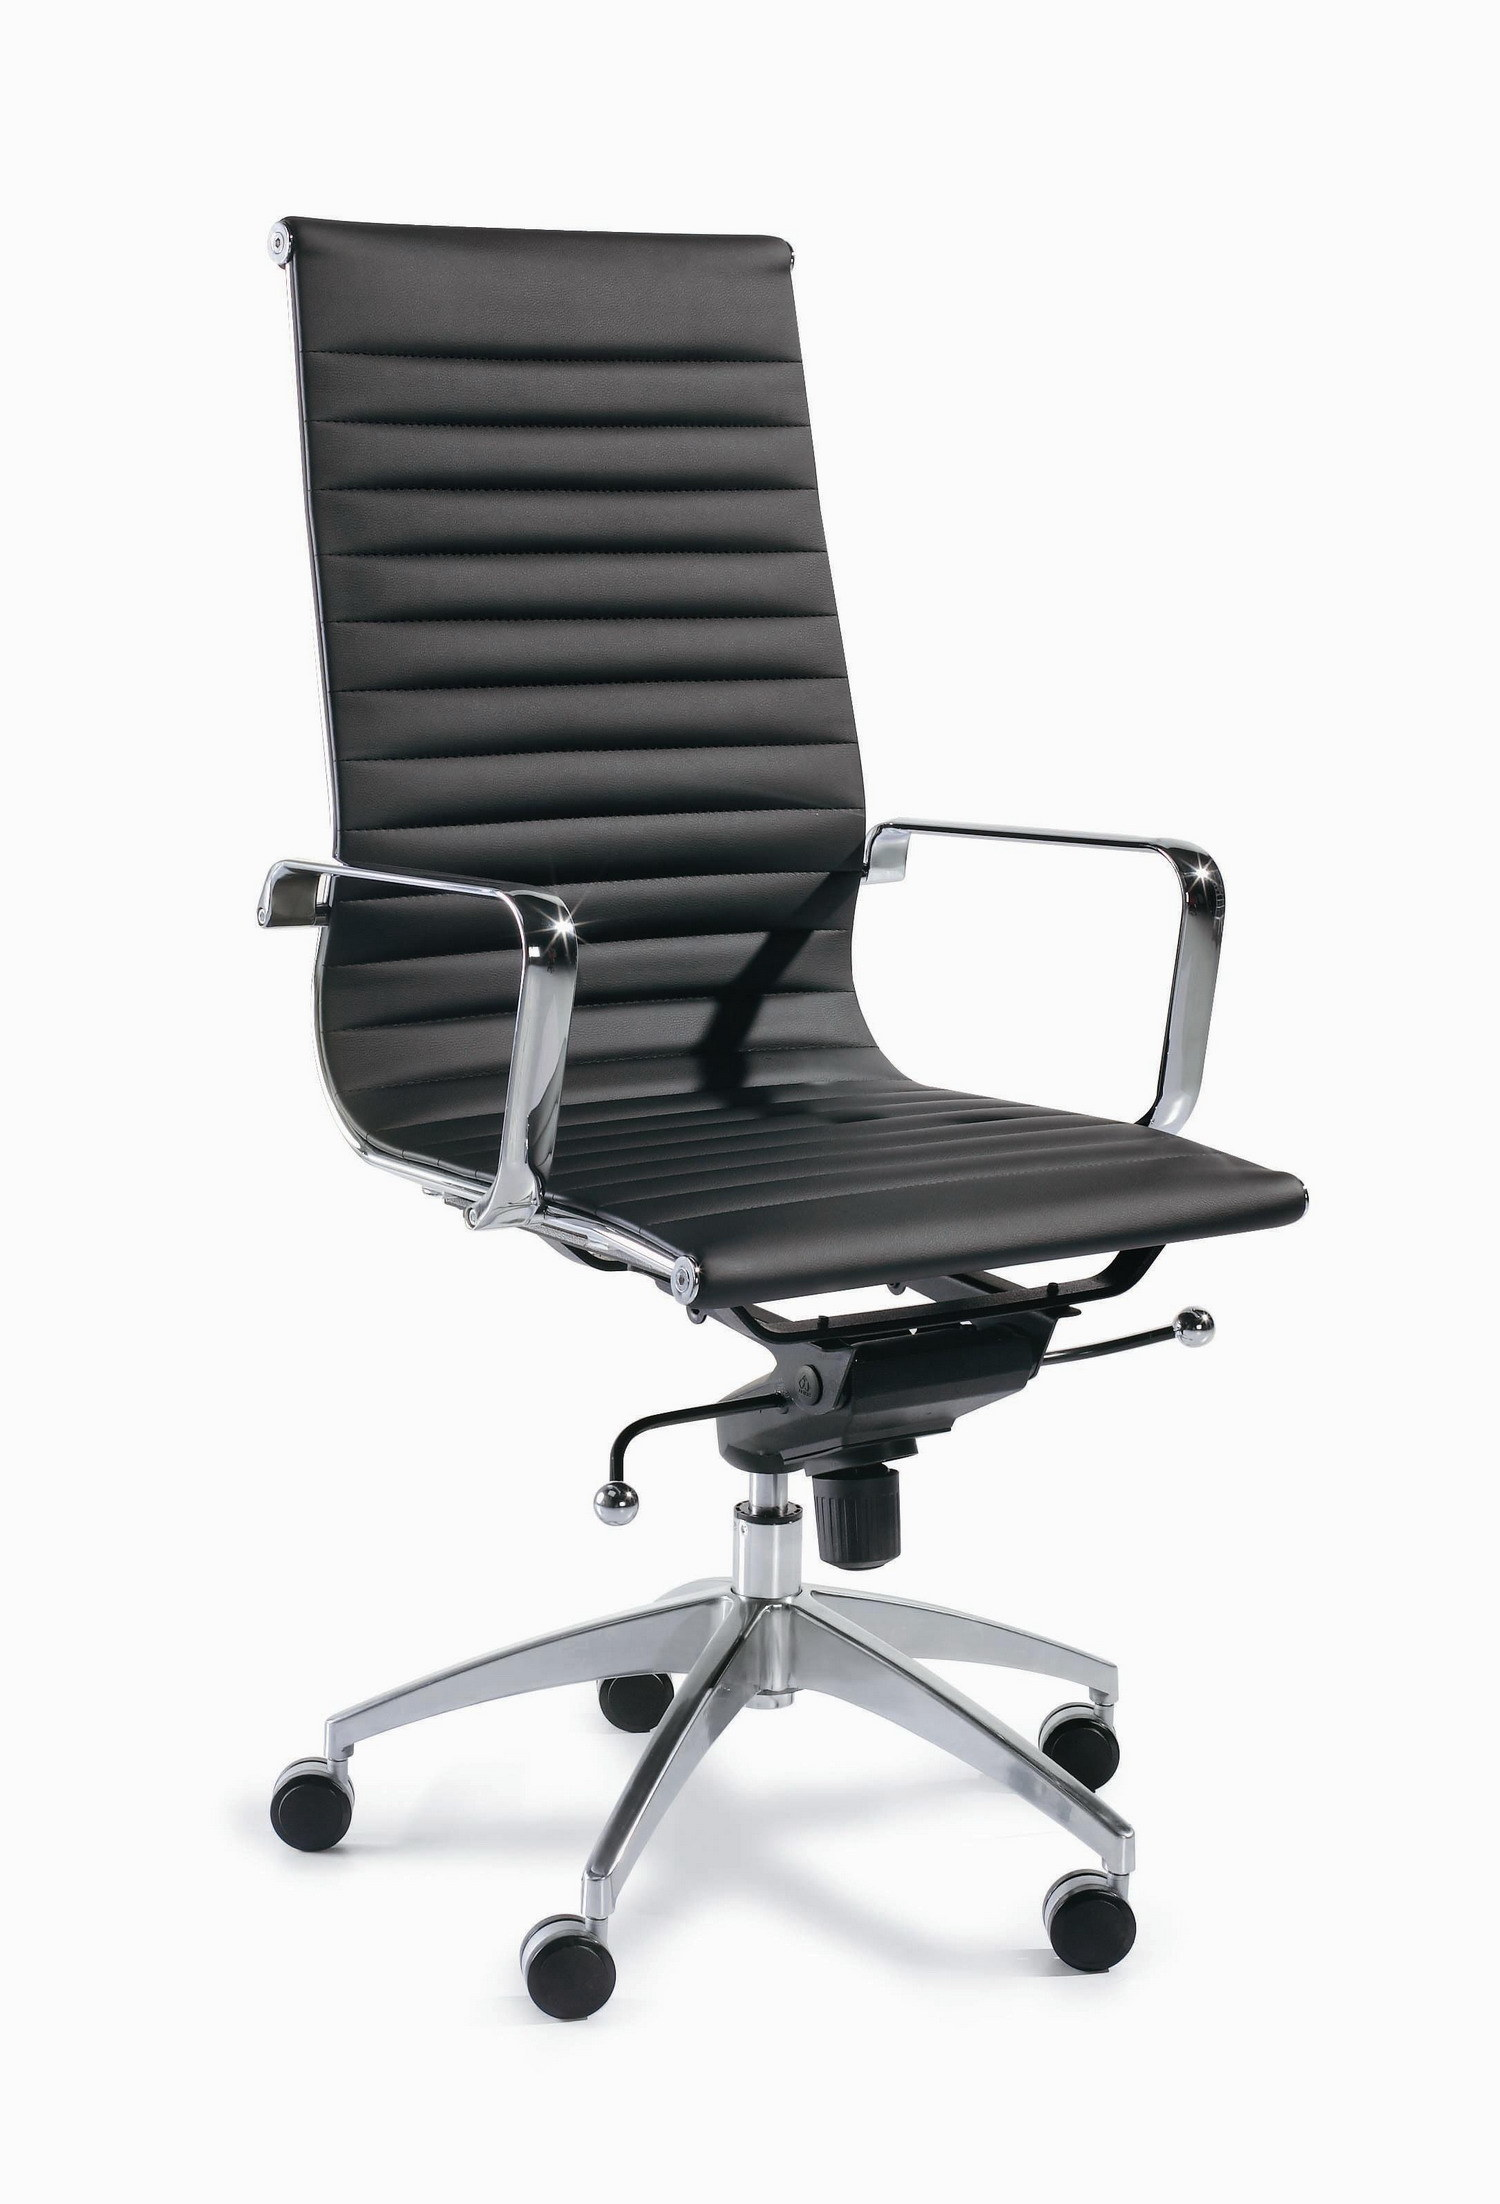 steel chair for office rattan 2 chairs and table set the information is not available right now